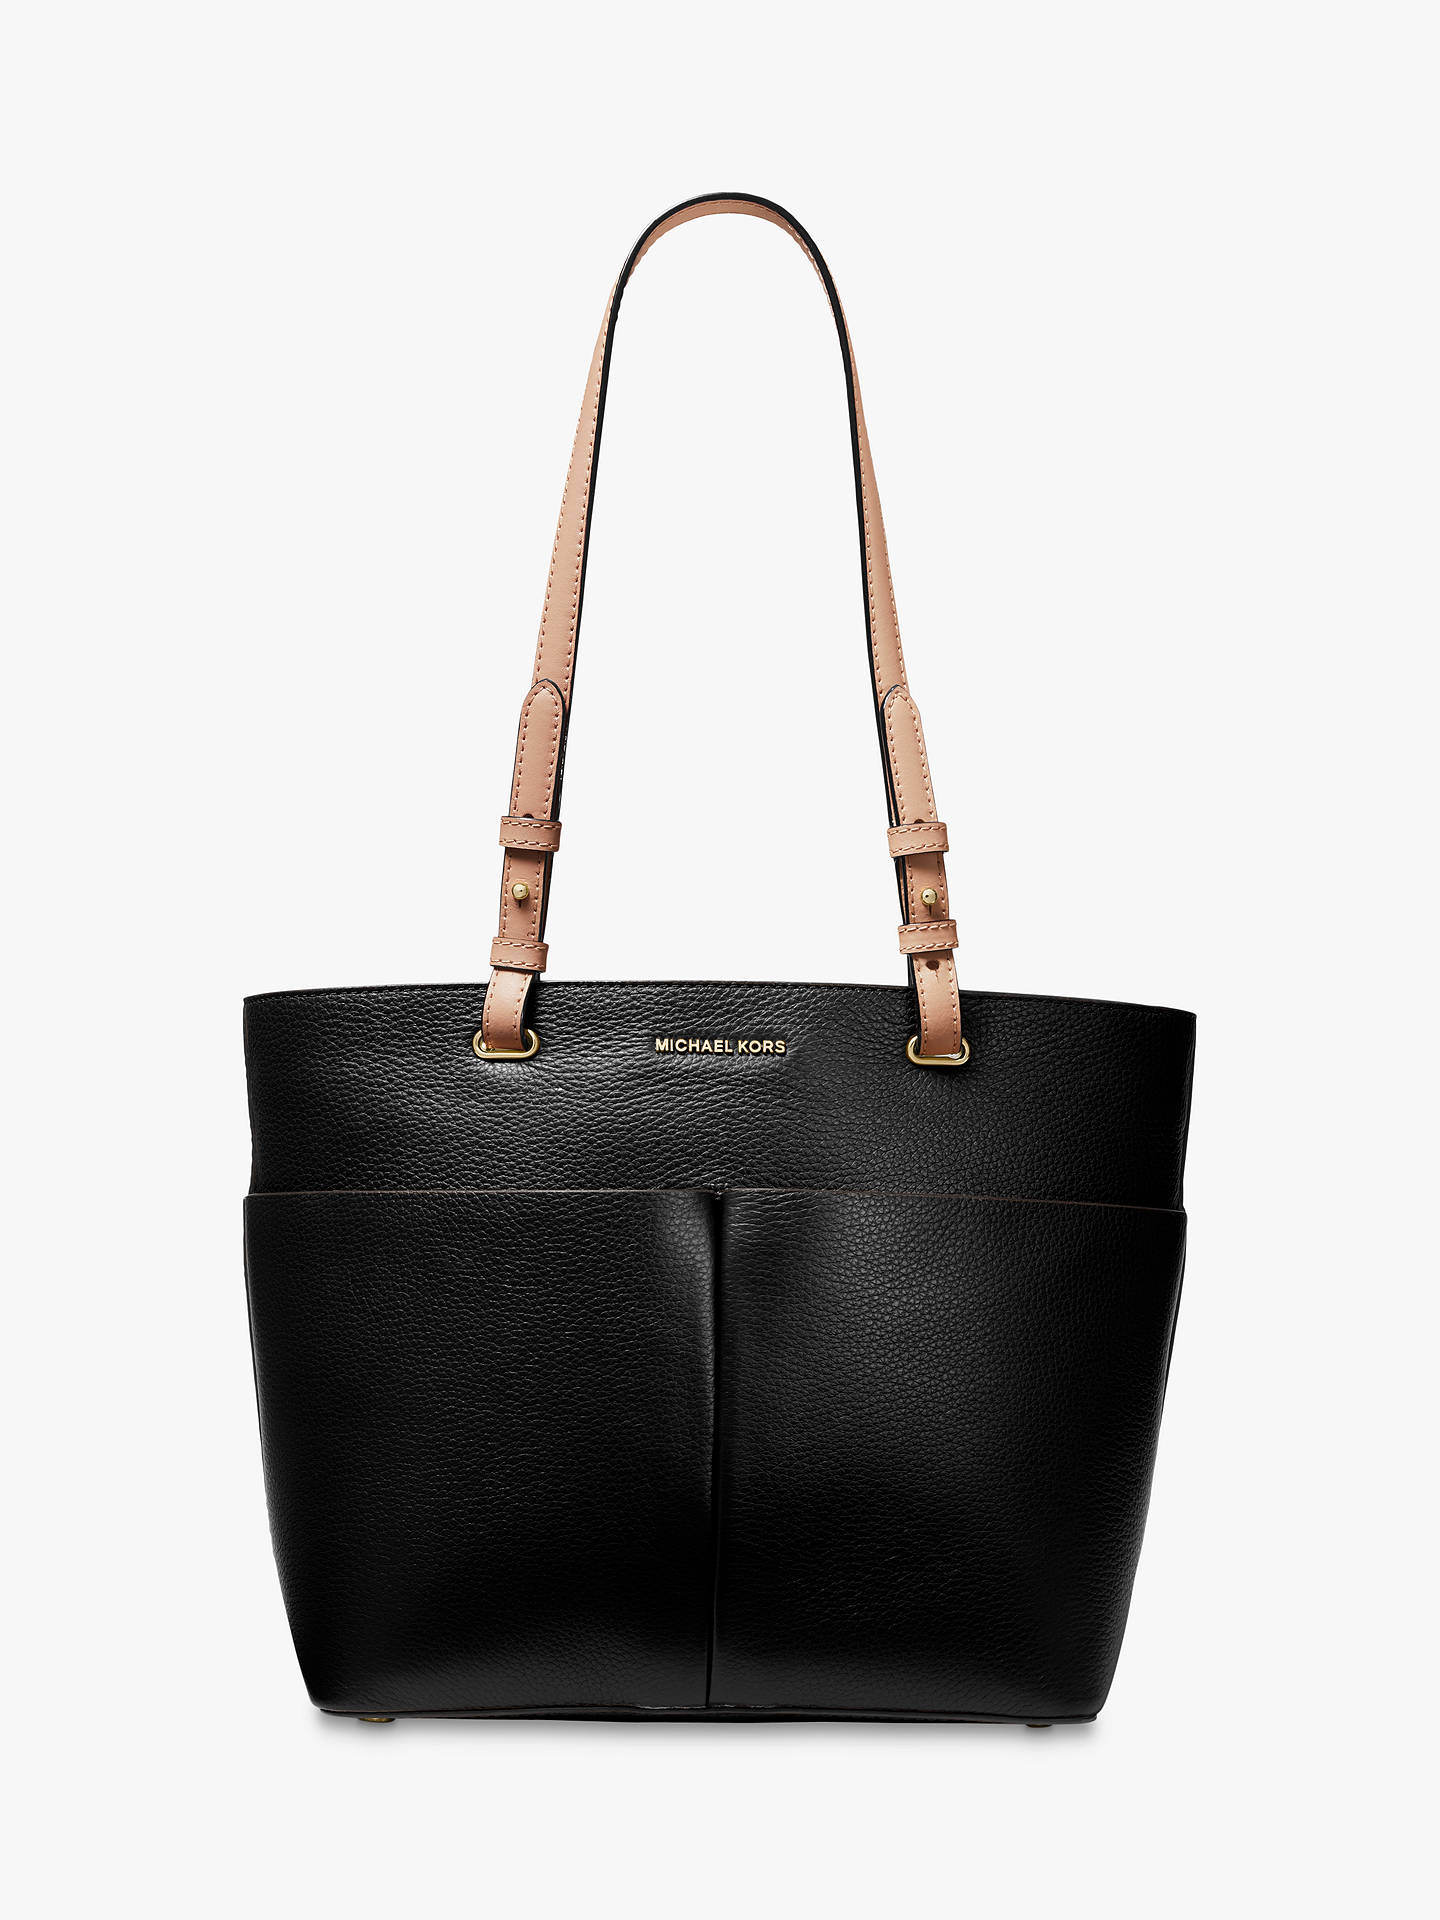 bfc50e2a5584 Buy MICHAEL Michael Kors Bedford Pocket Tote Bag, Black Online at  johnlewis.com ...